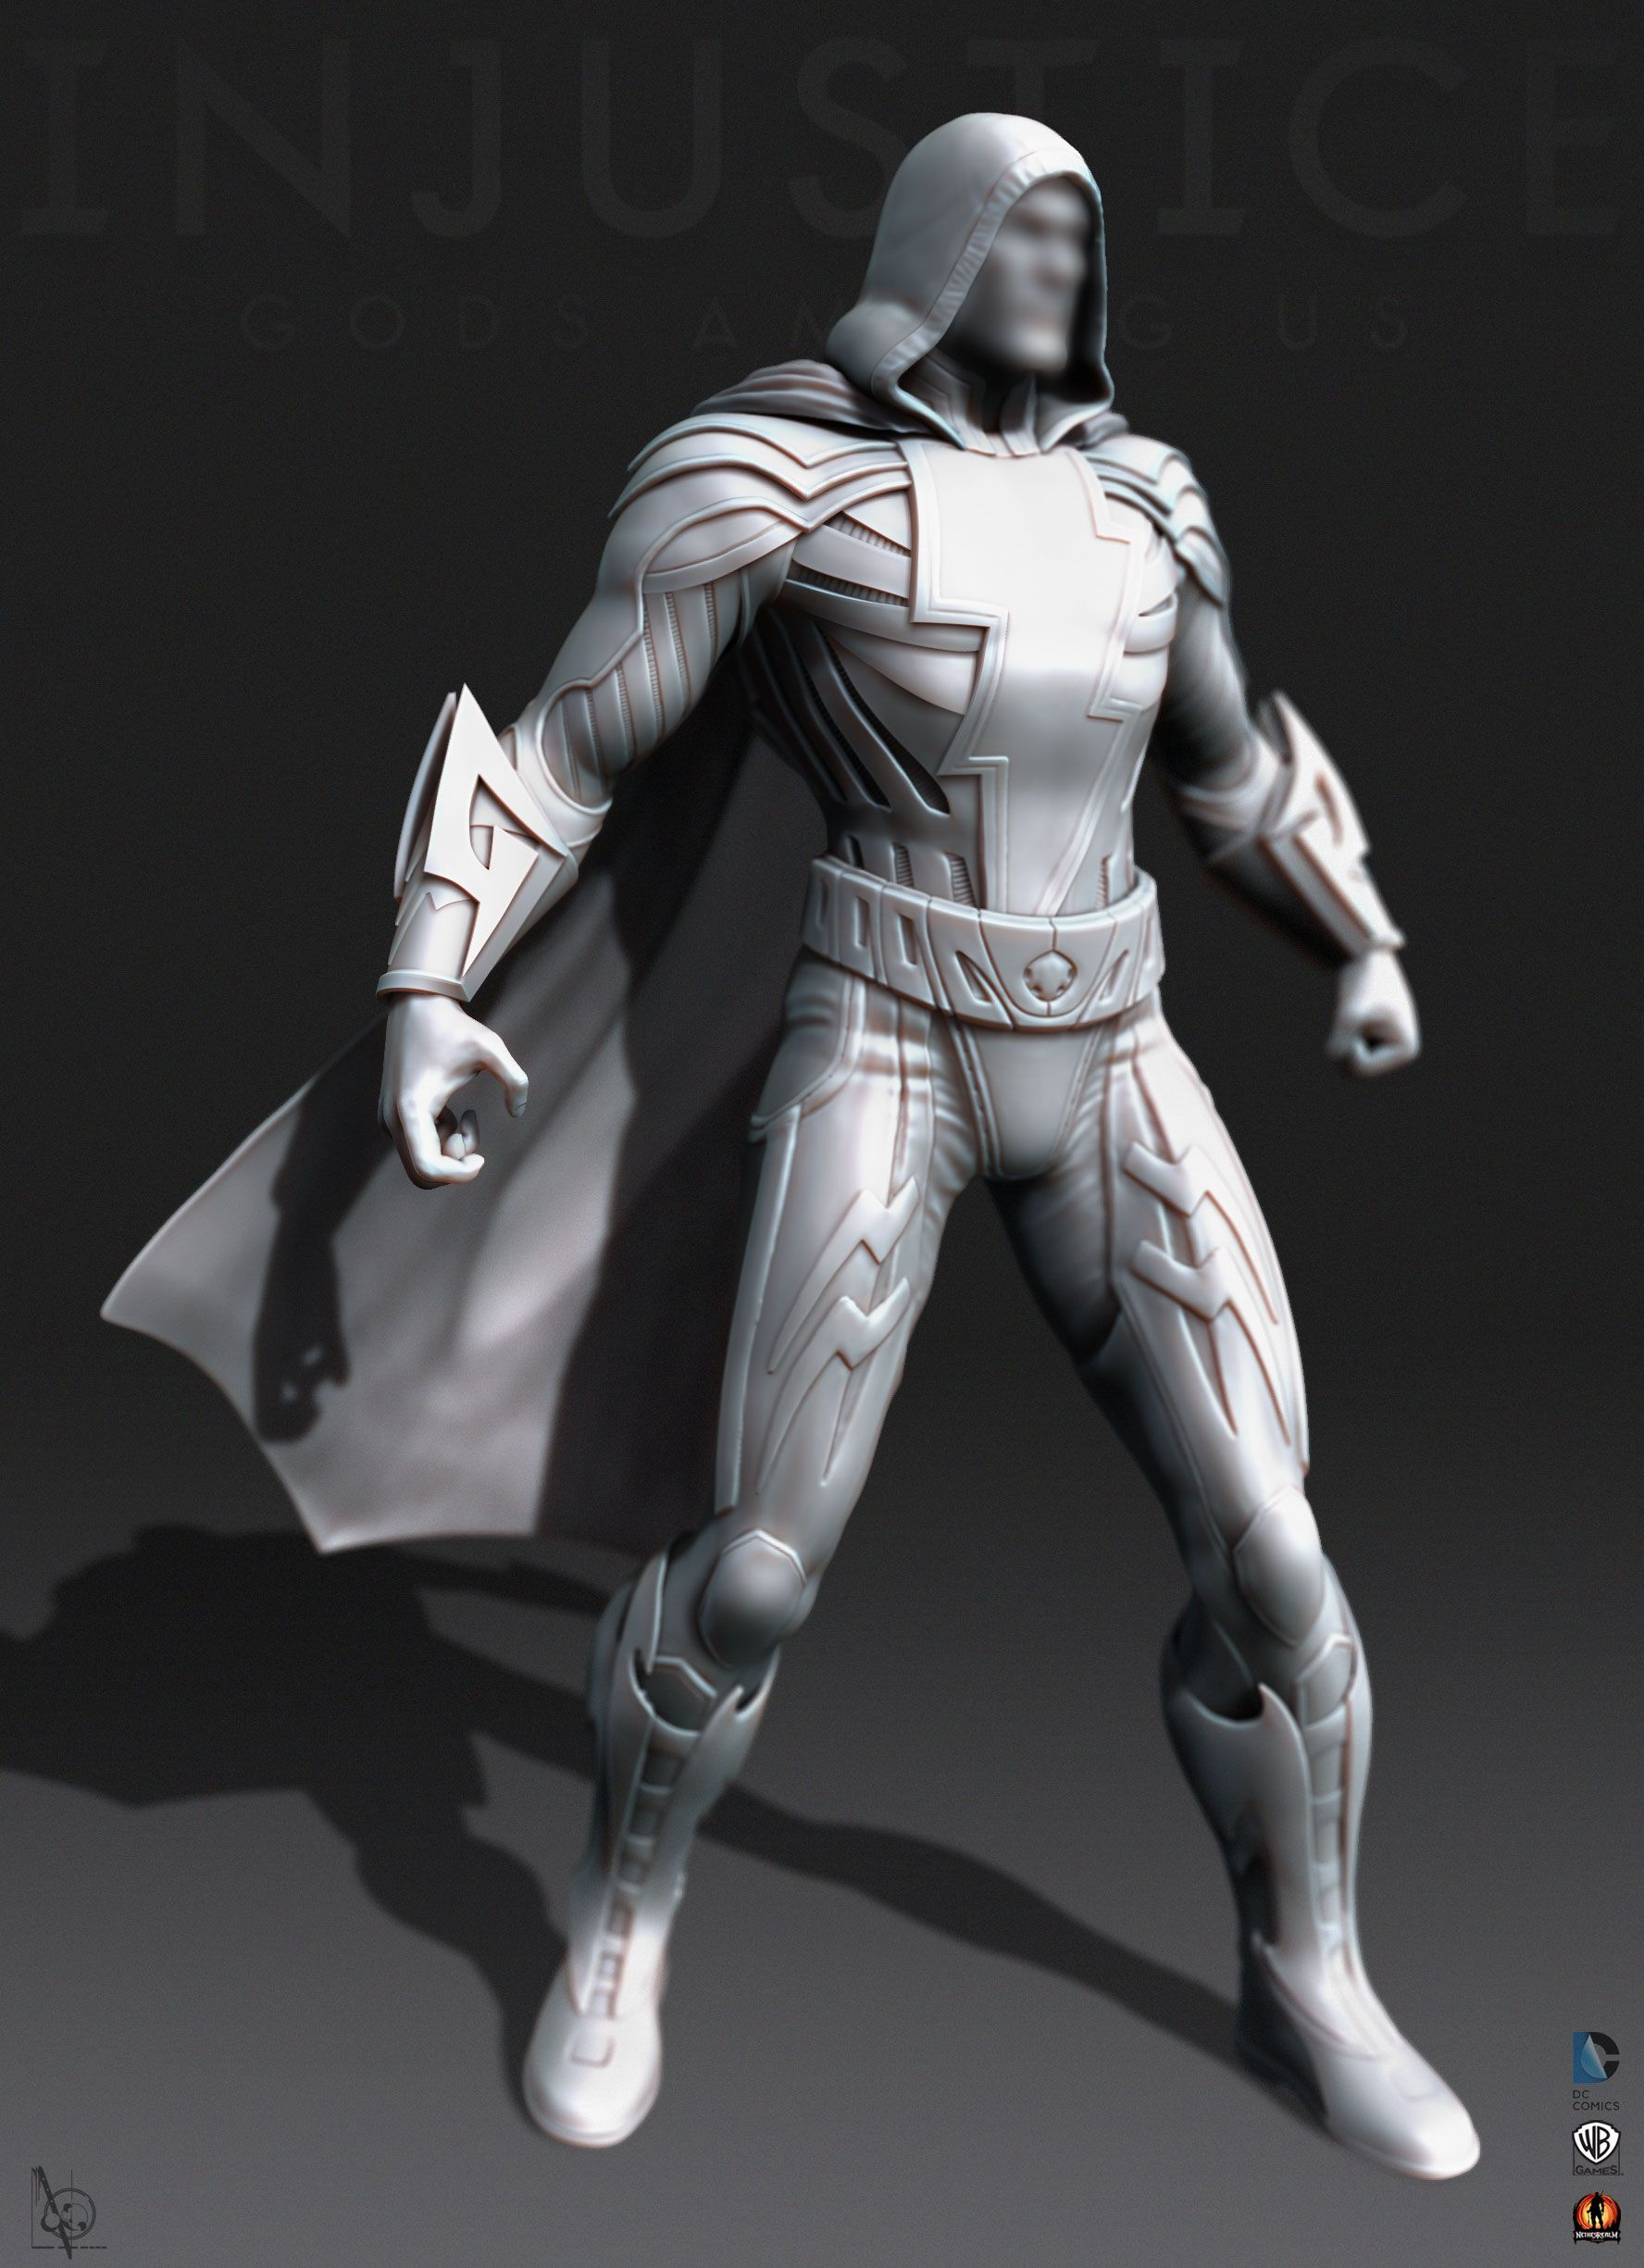 Injustice: Gods Among Us. Some highres ZBrush art. - Page 2 | 3d ...